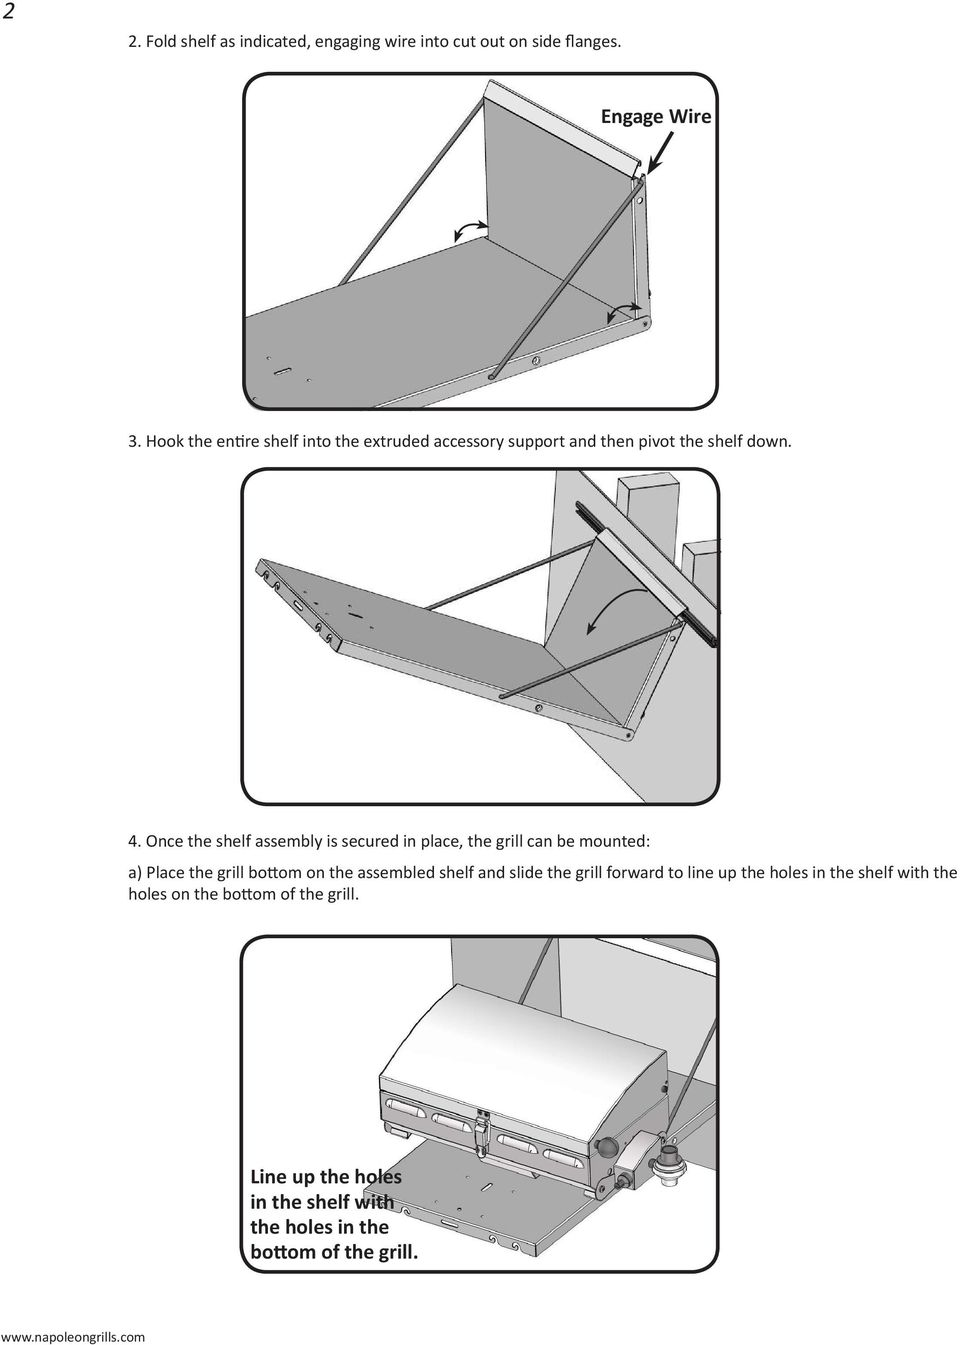 Once the shelf assembly is secured in place, the grill can be mounted: a) Place the grill bottom on the assembled shelf